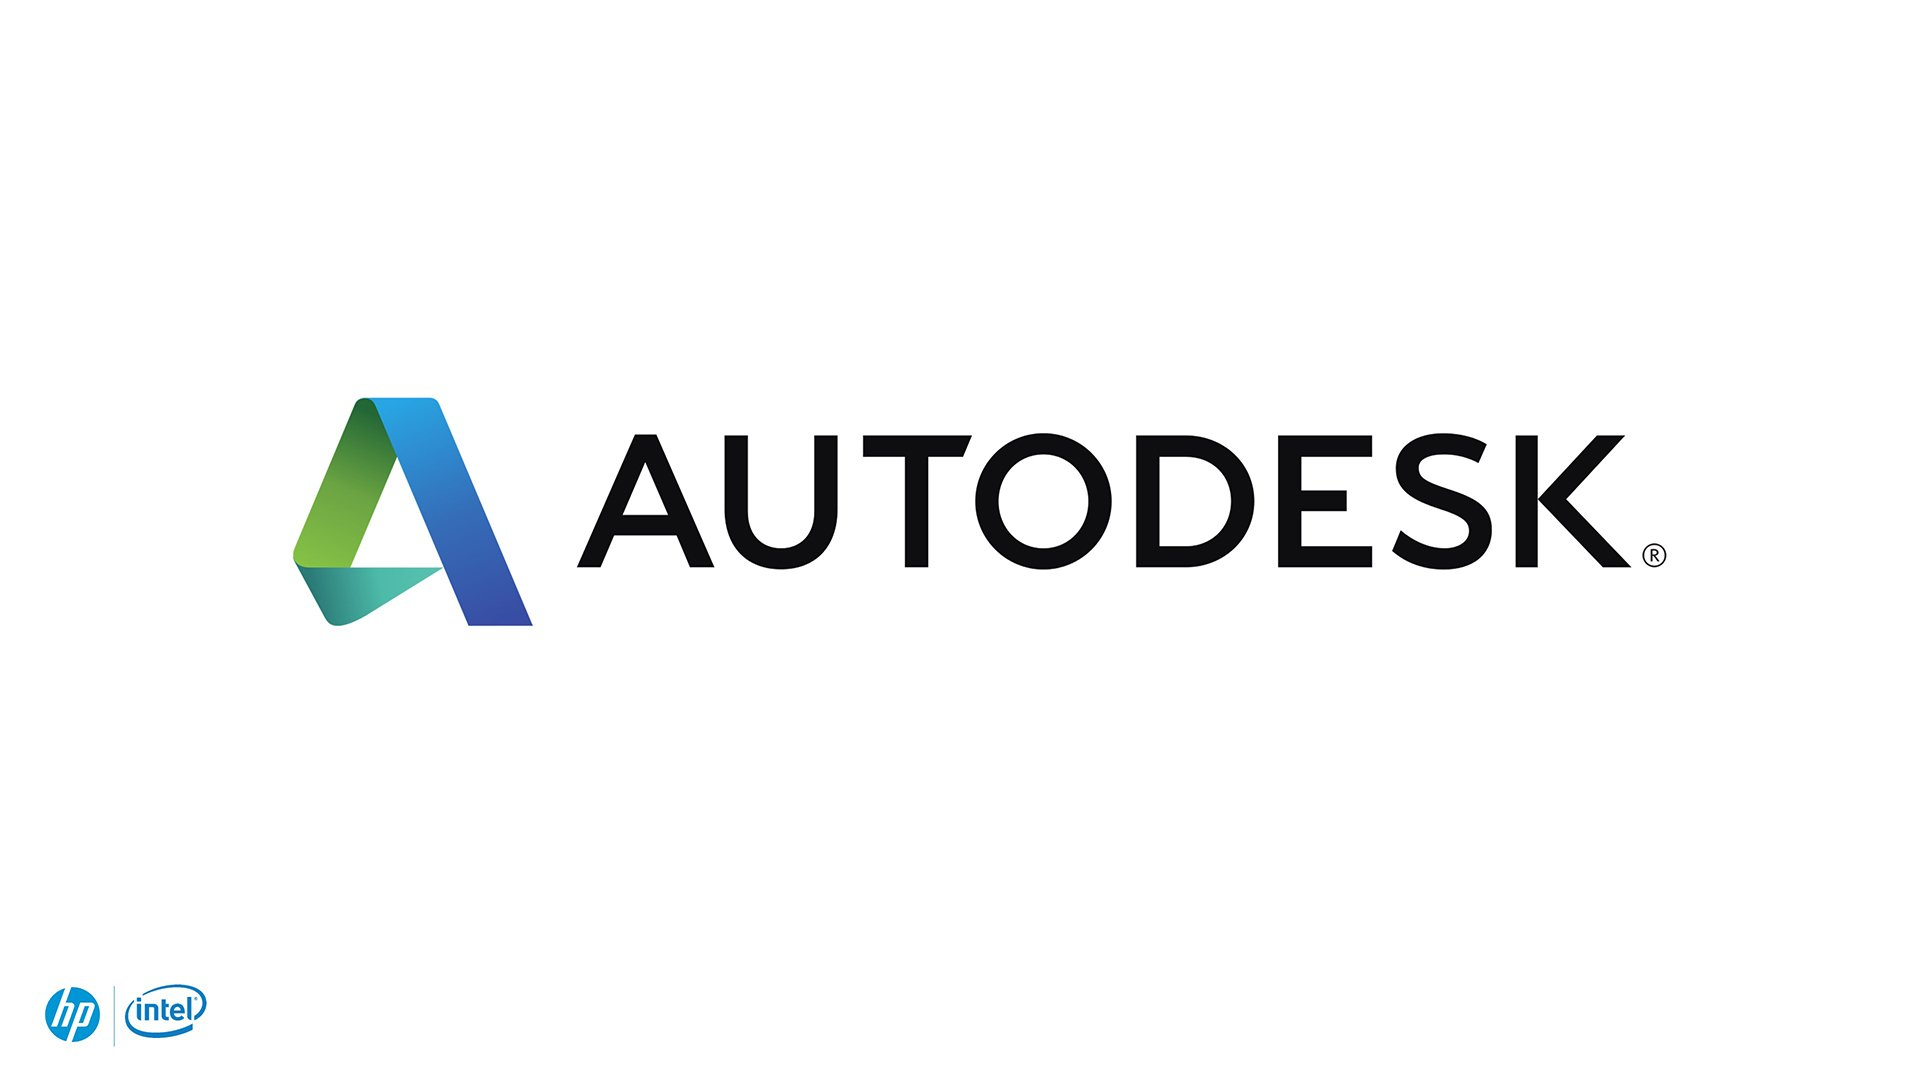 Autodesk demonstrated their new tools for Realtime VR development and viewing on a HP Z840 Workstation with NVIDIA's Quadro P6000 GPU and Intel Xeon Processors.